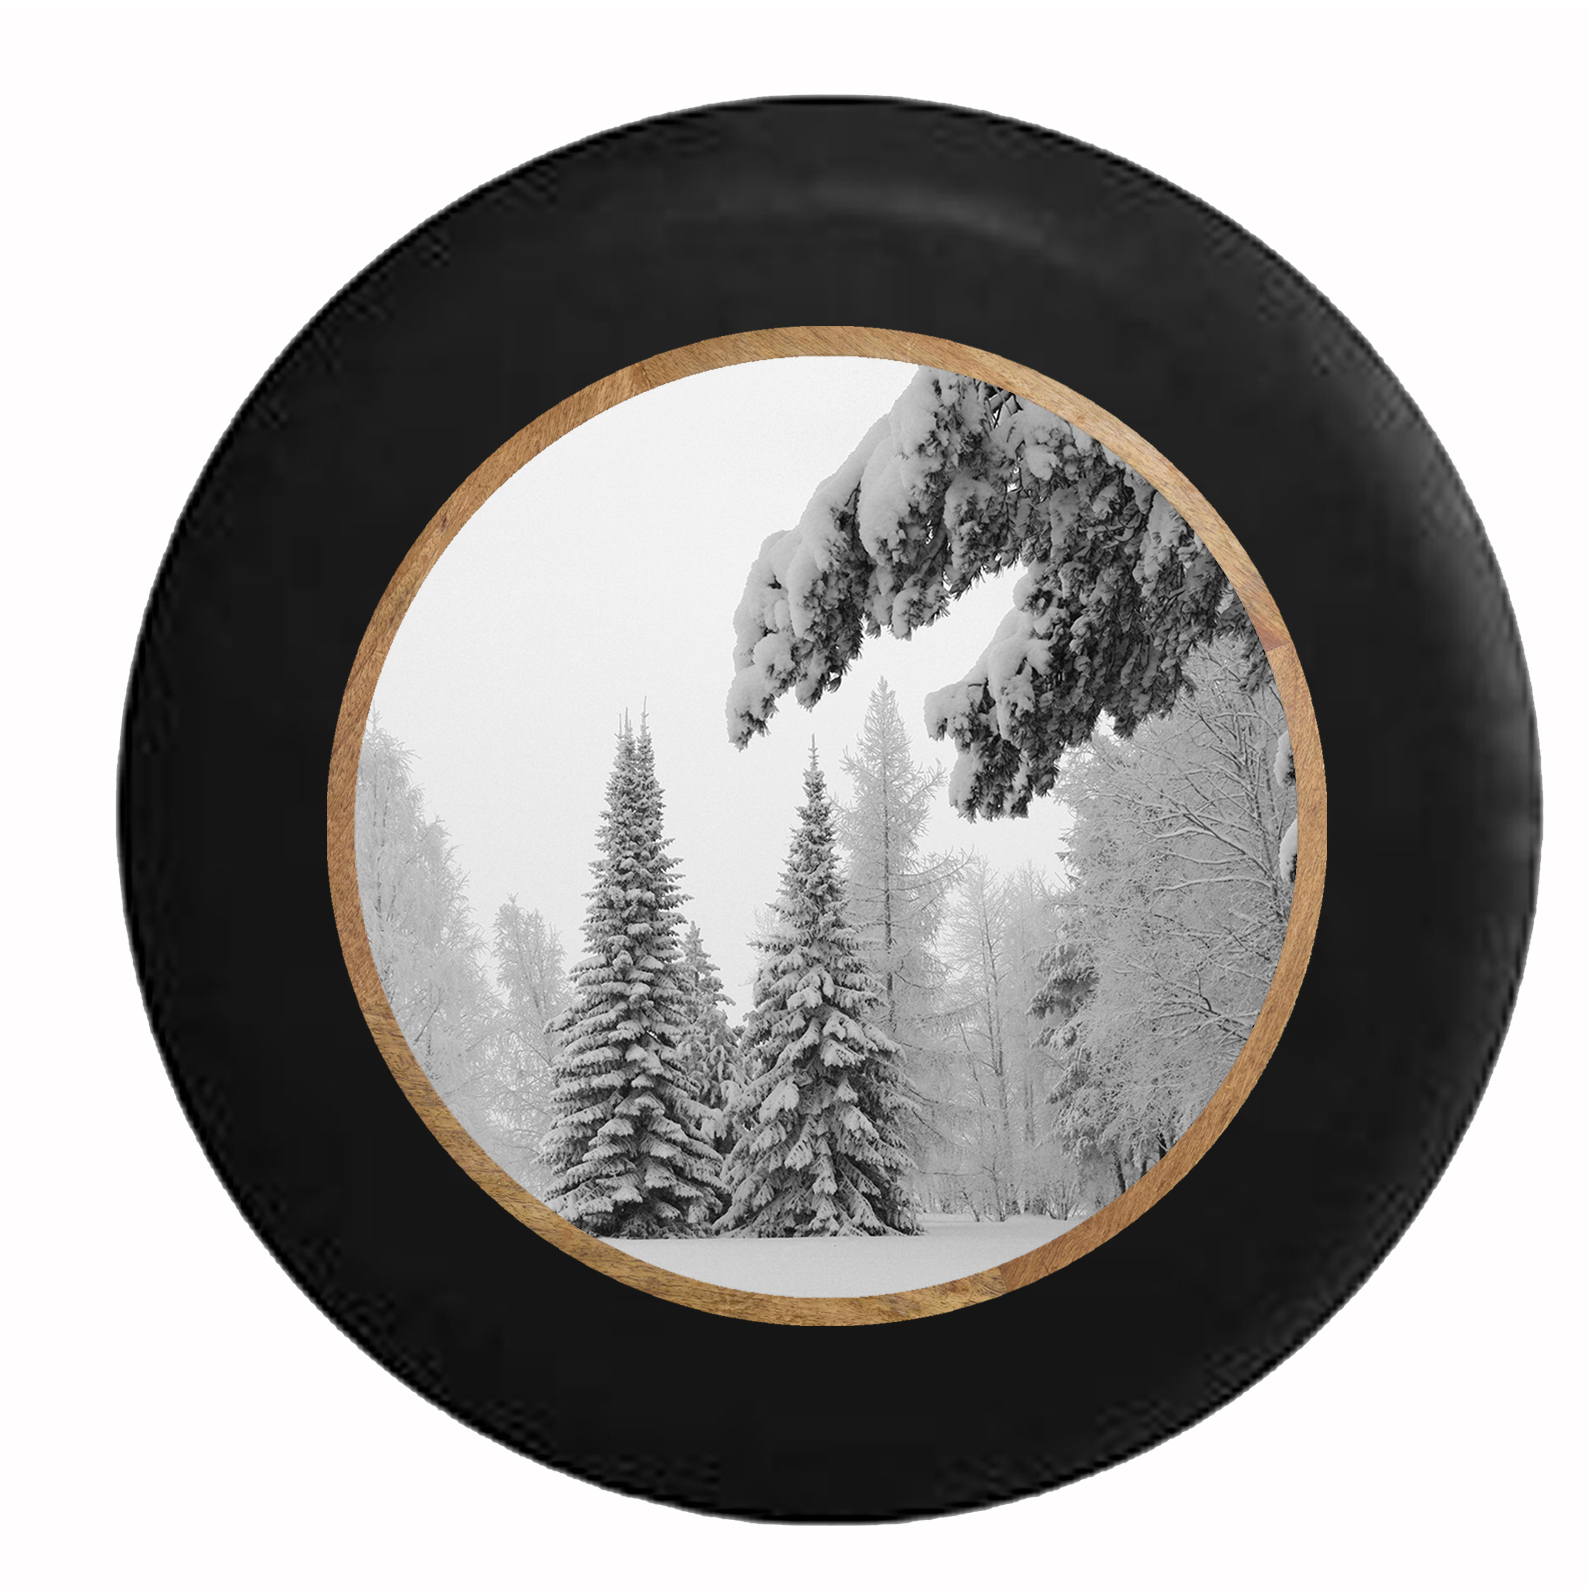 Winter Wonderland Snow Covered Pines  Jeep RV Camper Spare Tire Cover Black 29 in